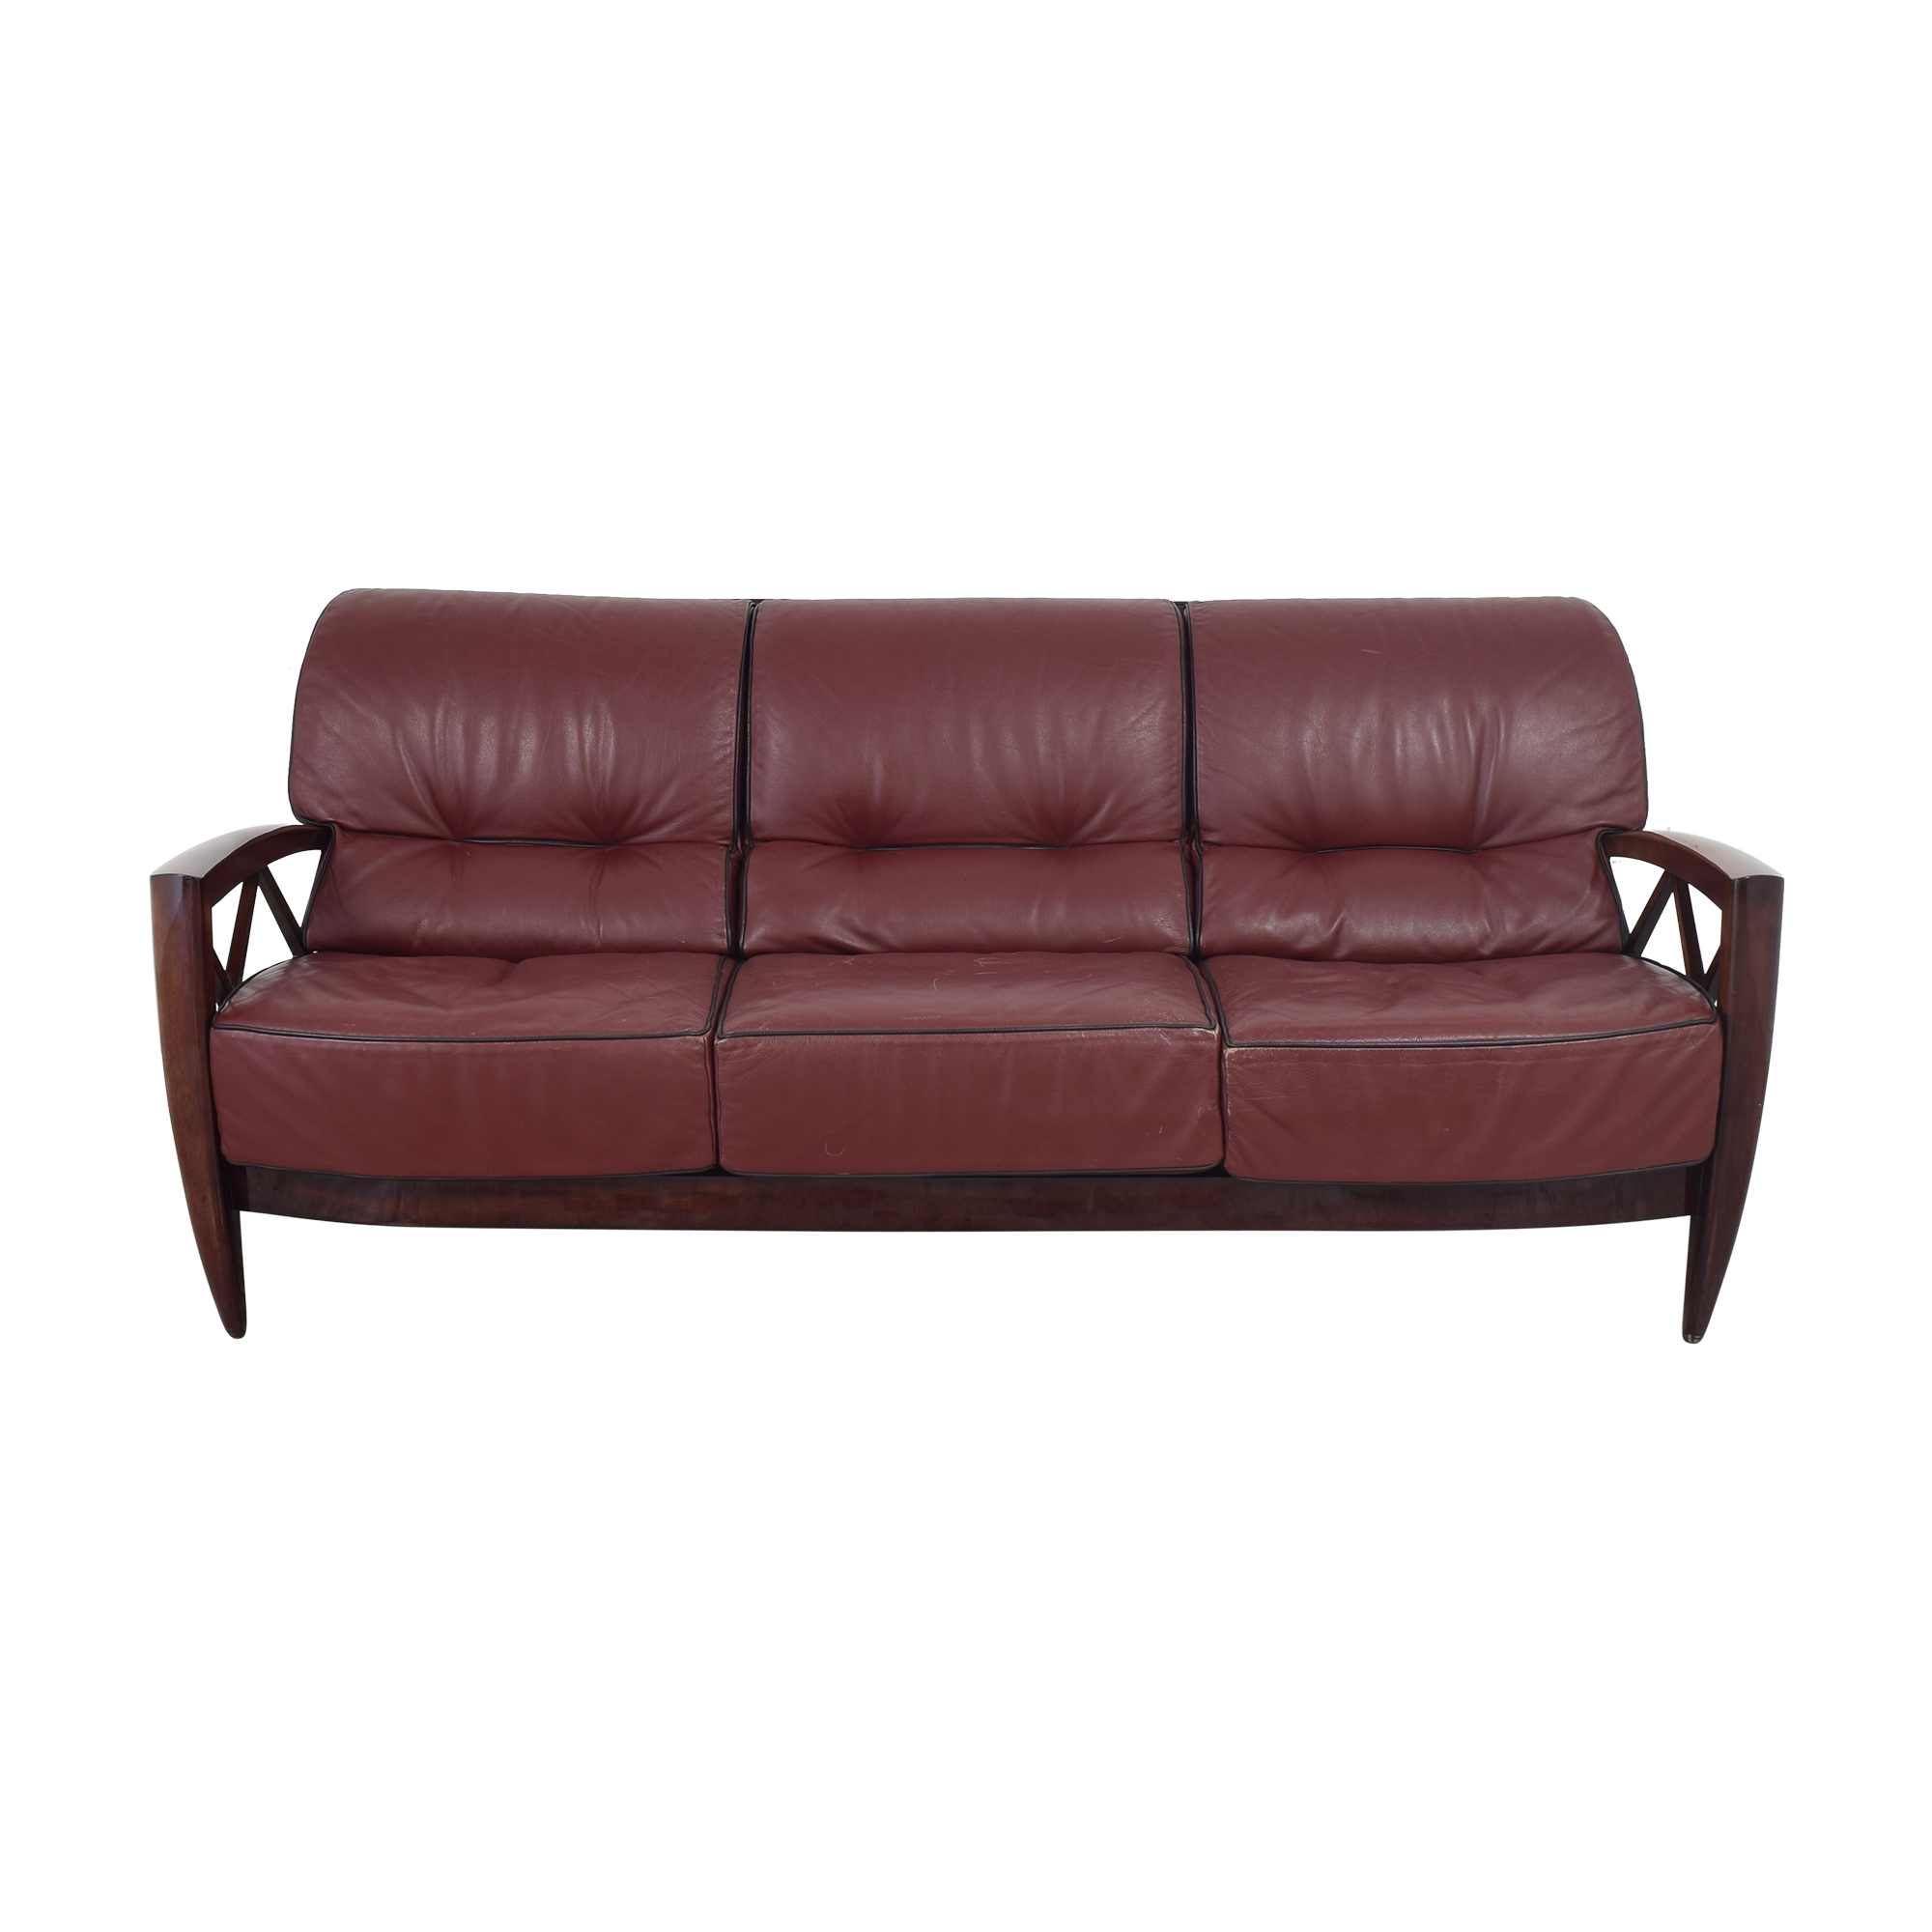 Pace Collection i4Mariani for Pace Collection Three Seat Sofa Classic Sofas